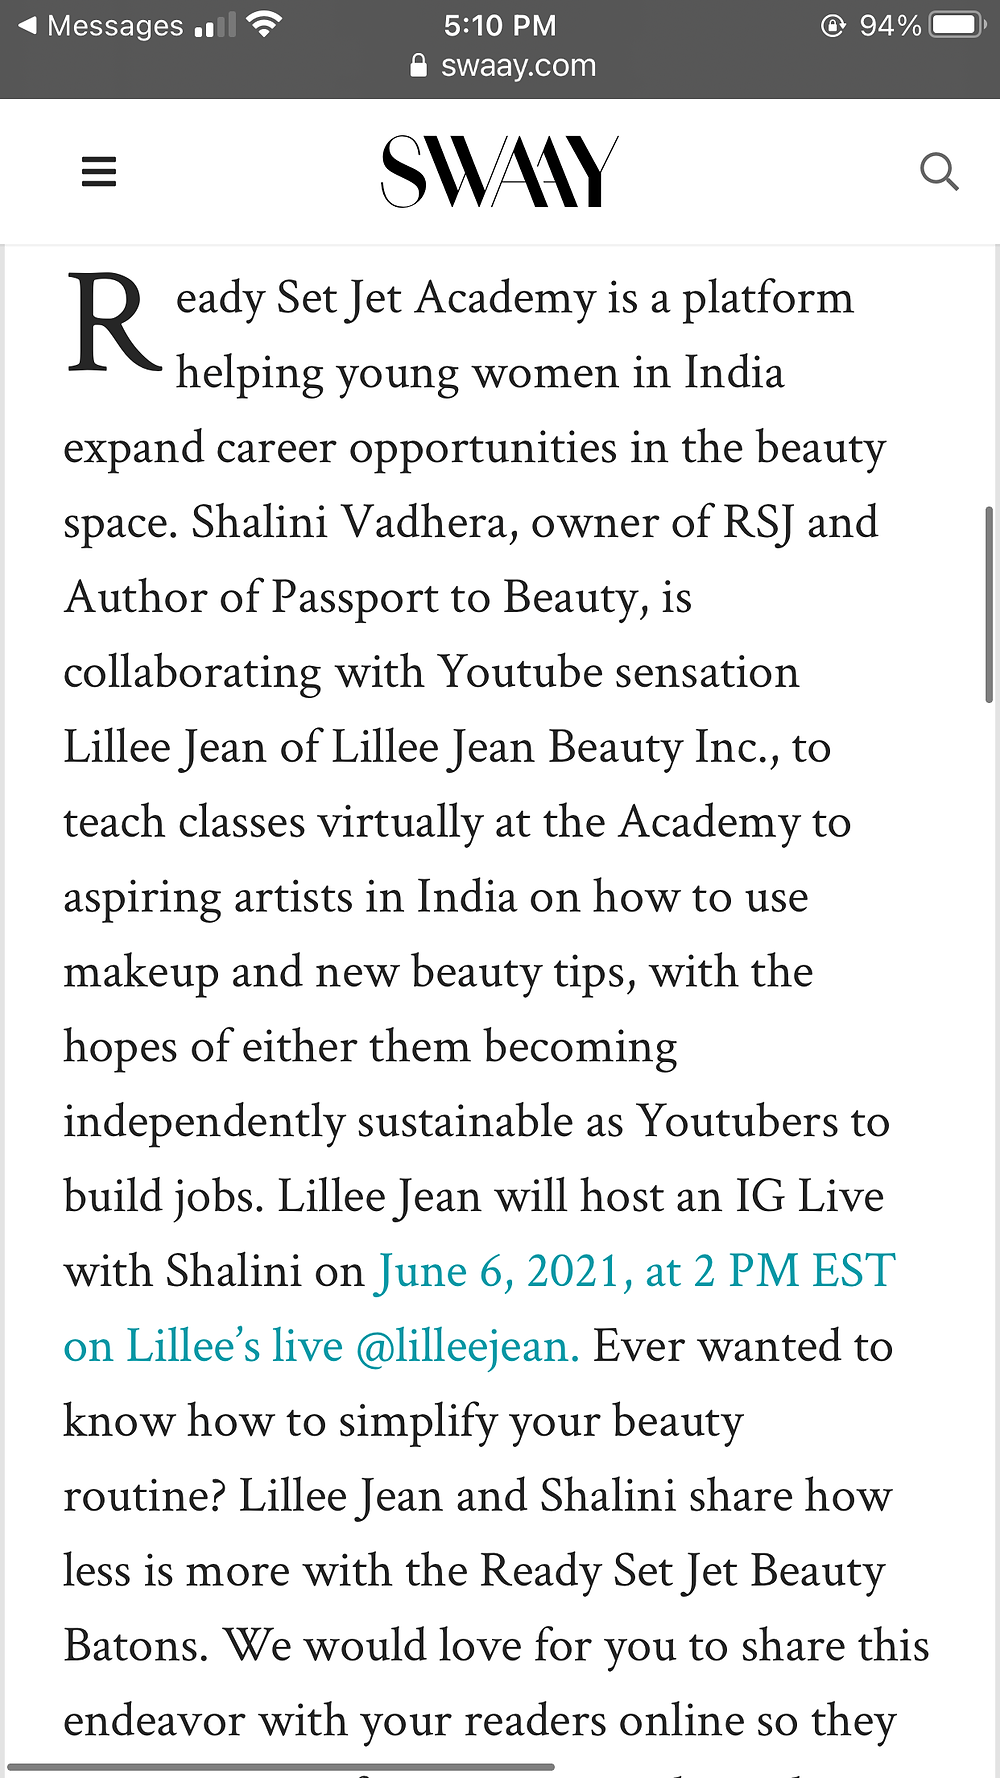 Lillee Jean and Shalini Teaching Aspiring Females in India to JumpStart Health and Beauty Careers with 'Ready Set Jet Academy'